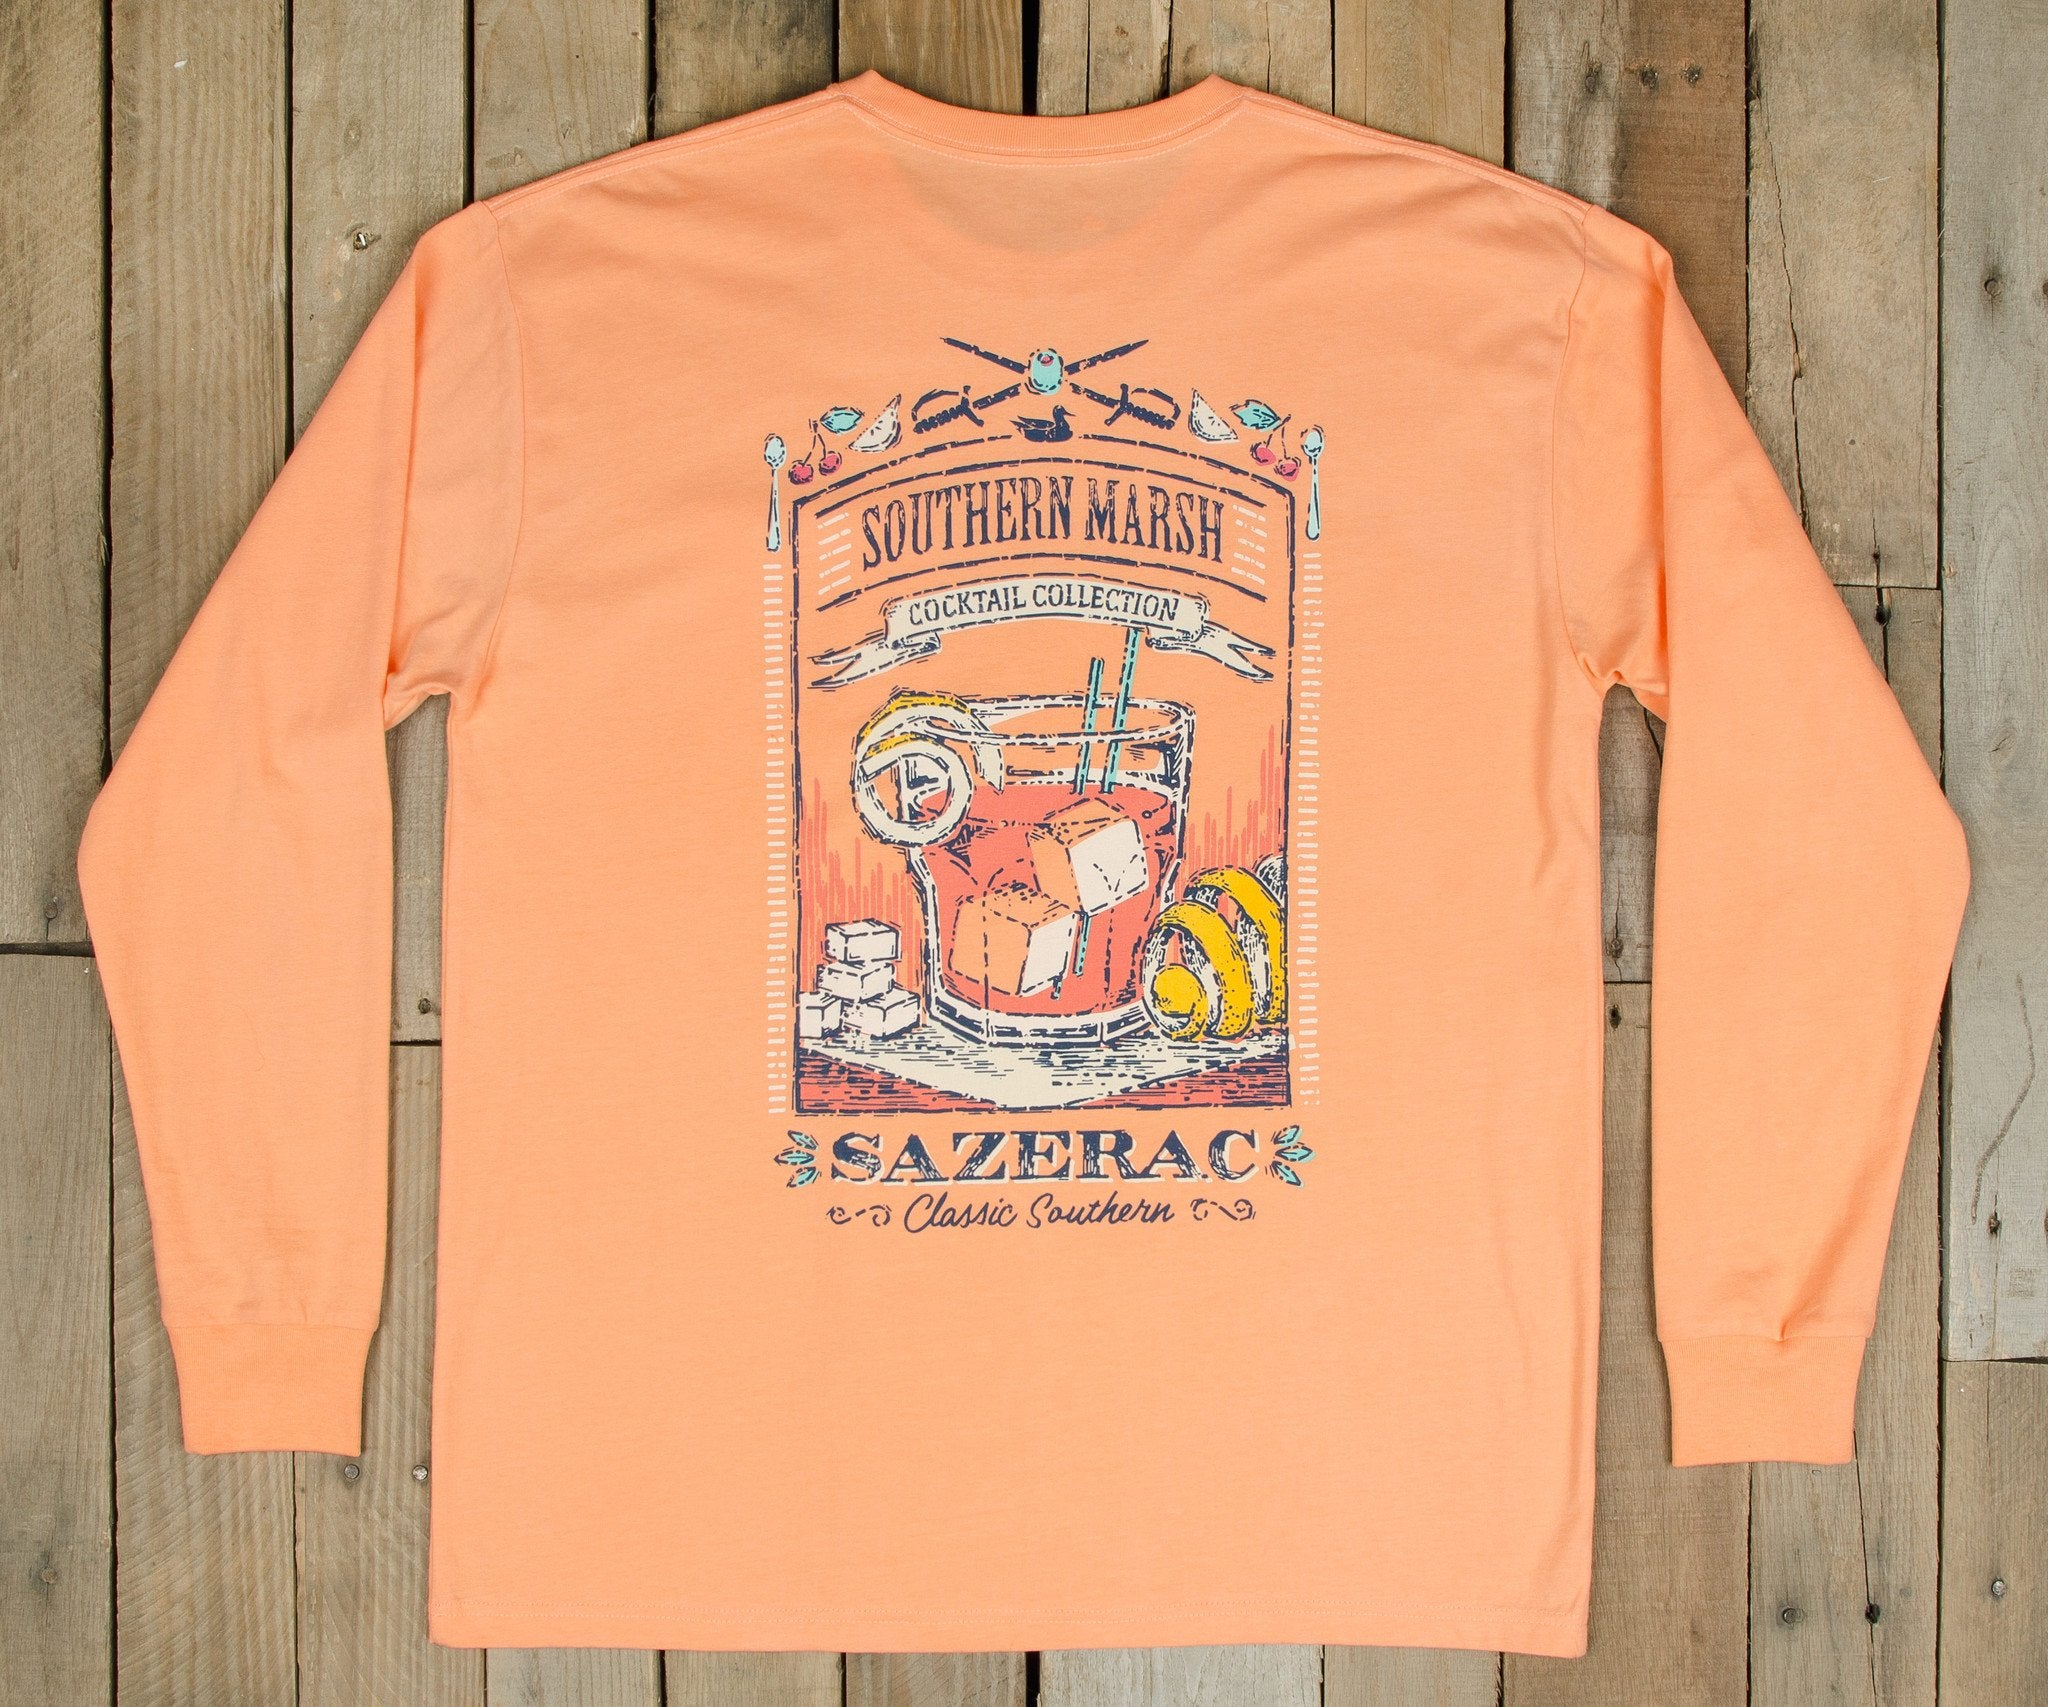 Southern Marsh Collection Cocktail Collection Tee